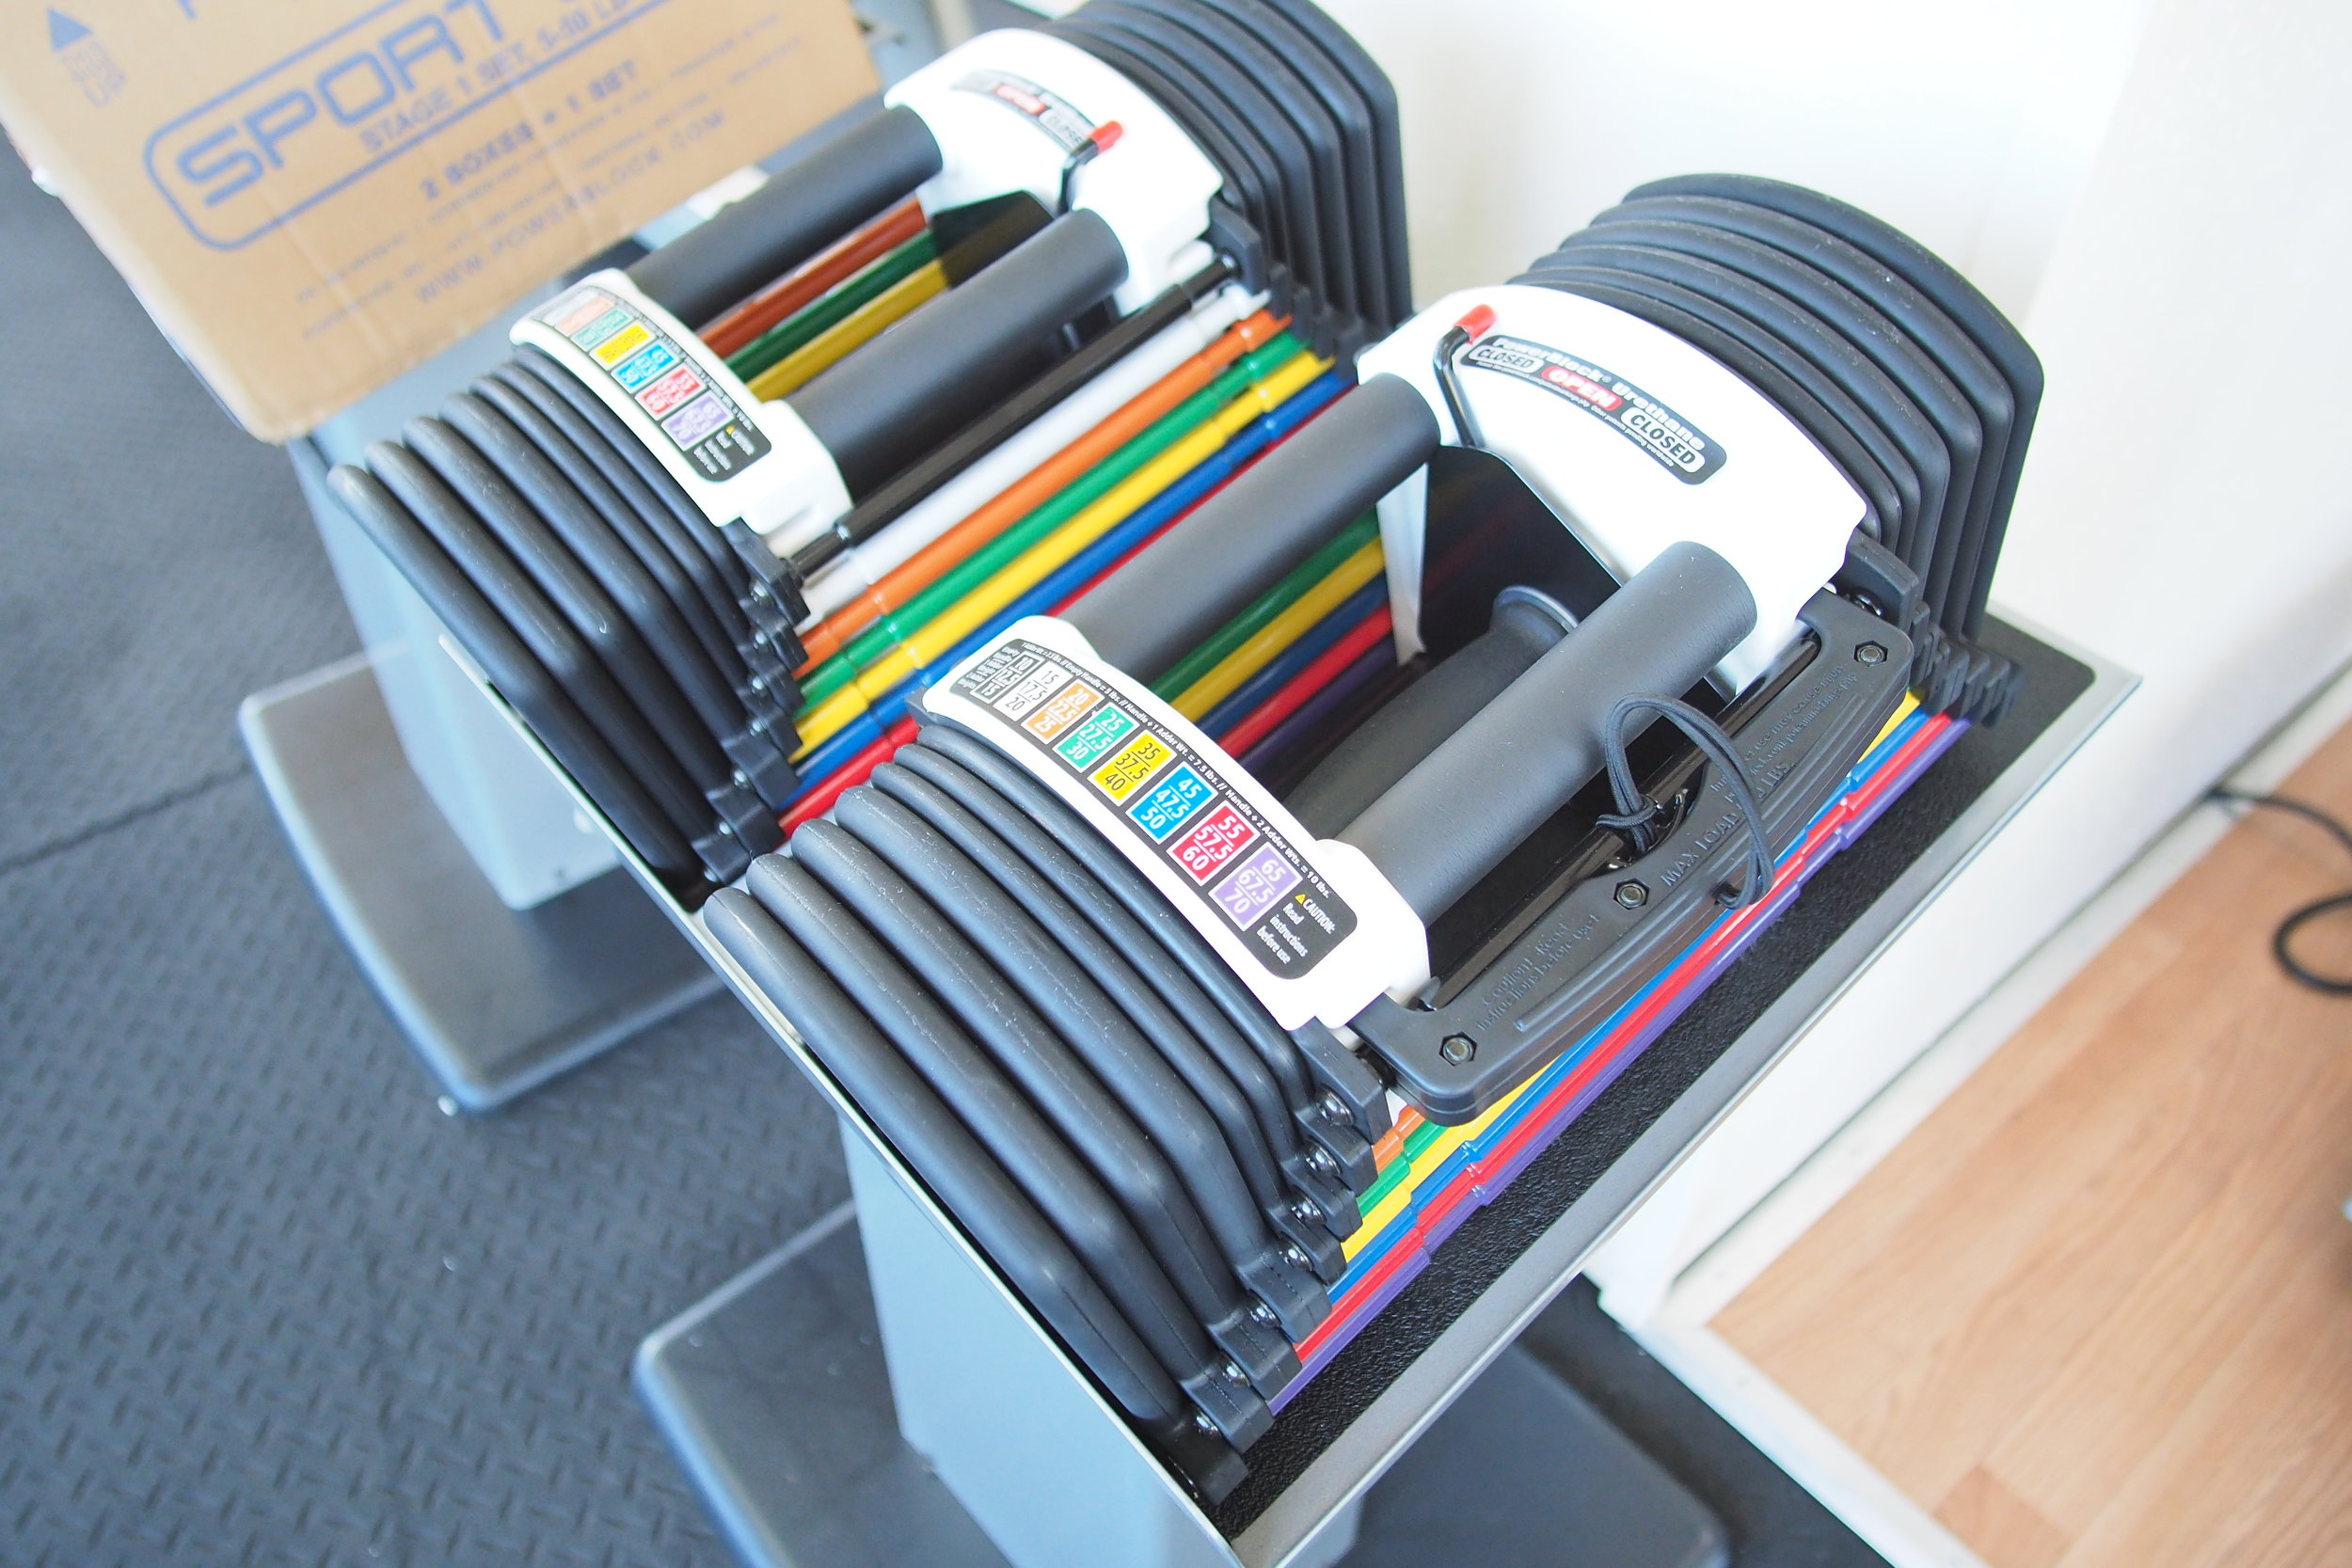 replace An entire rack of dumbbells - Within one set of PowerBlocks you can replace an entire rack, up to 120lbs!